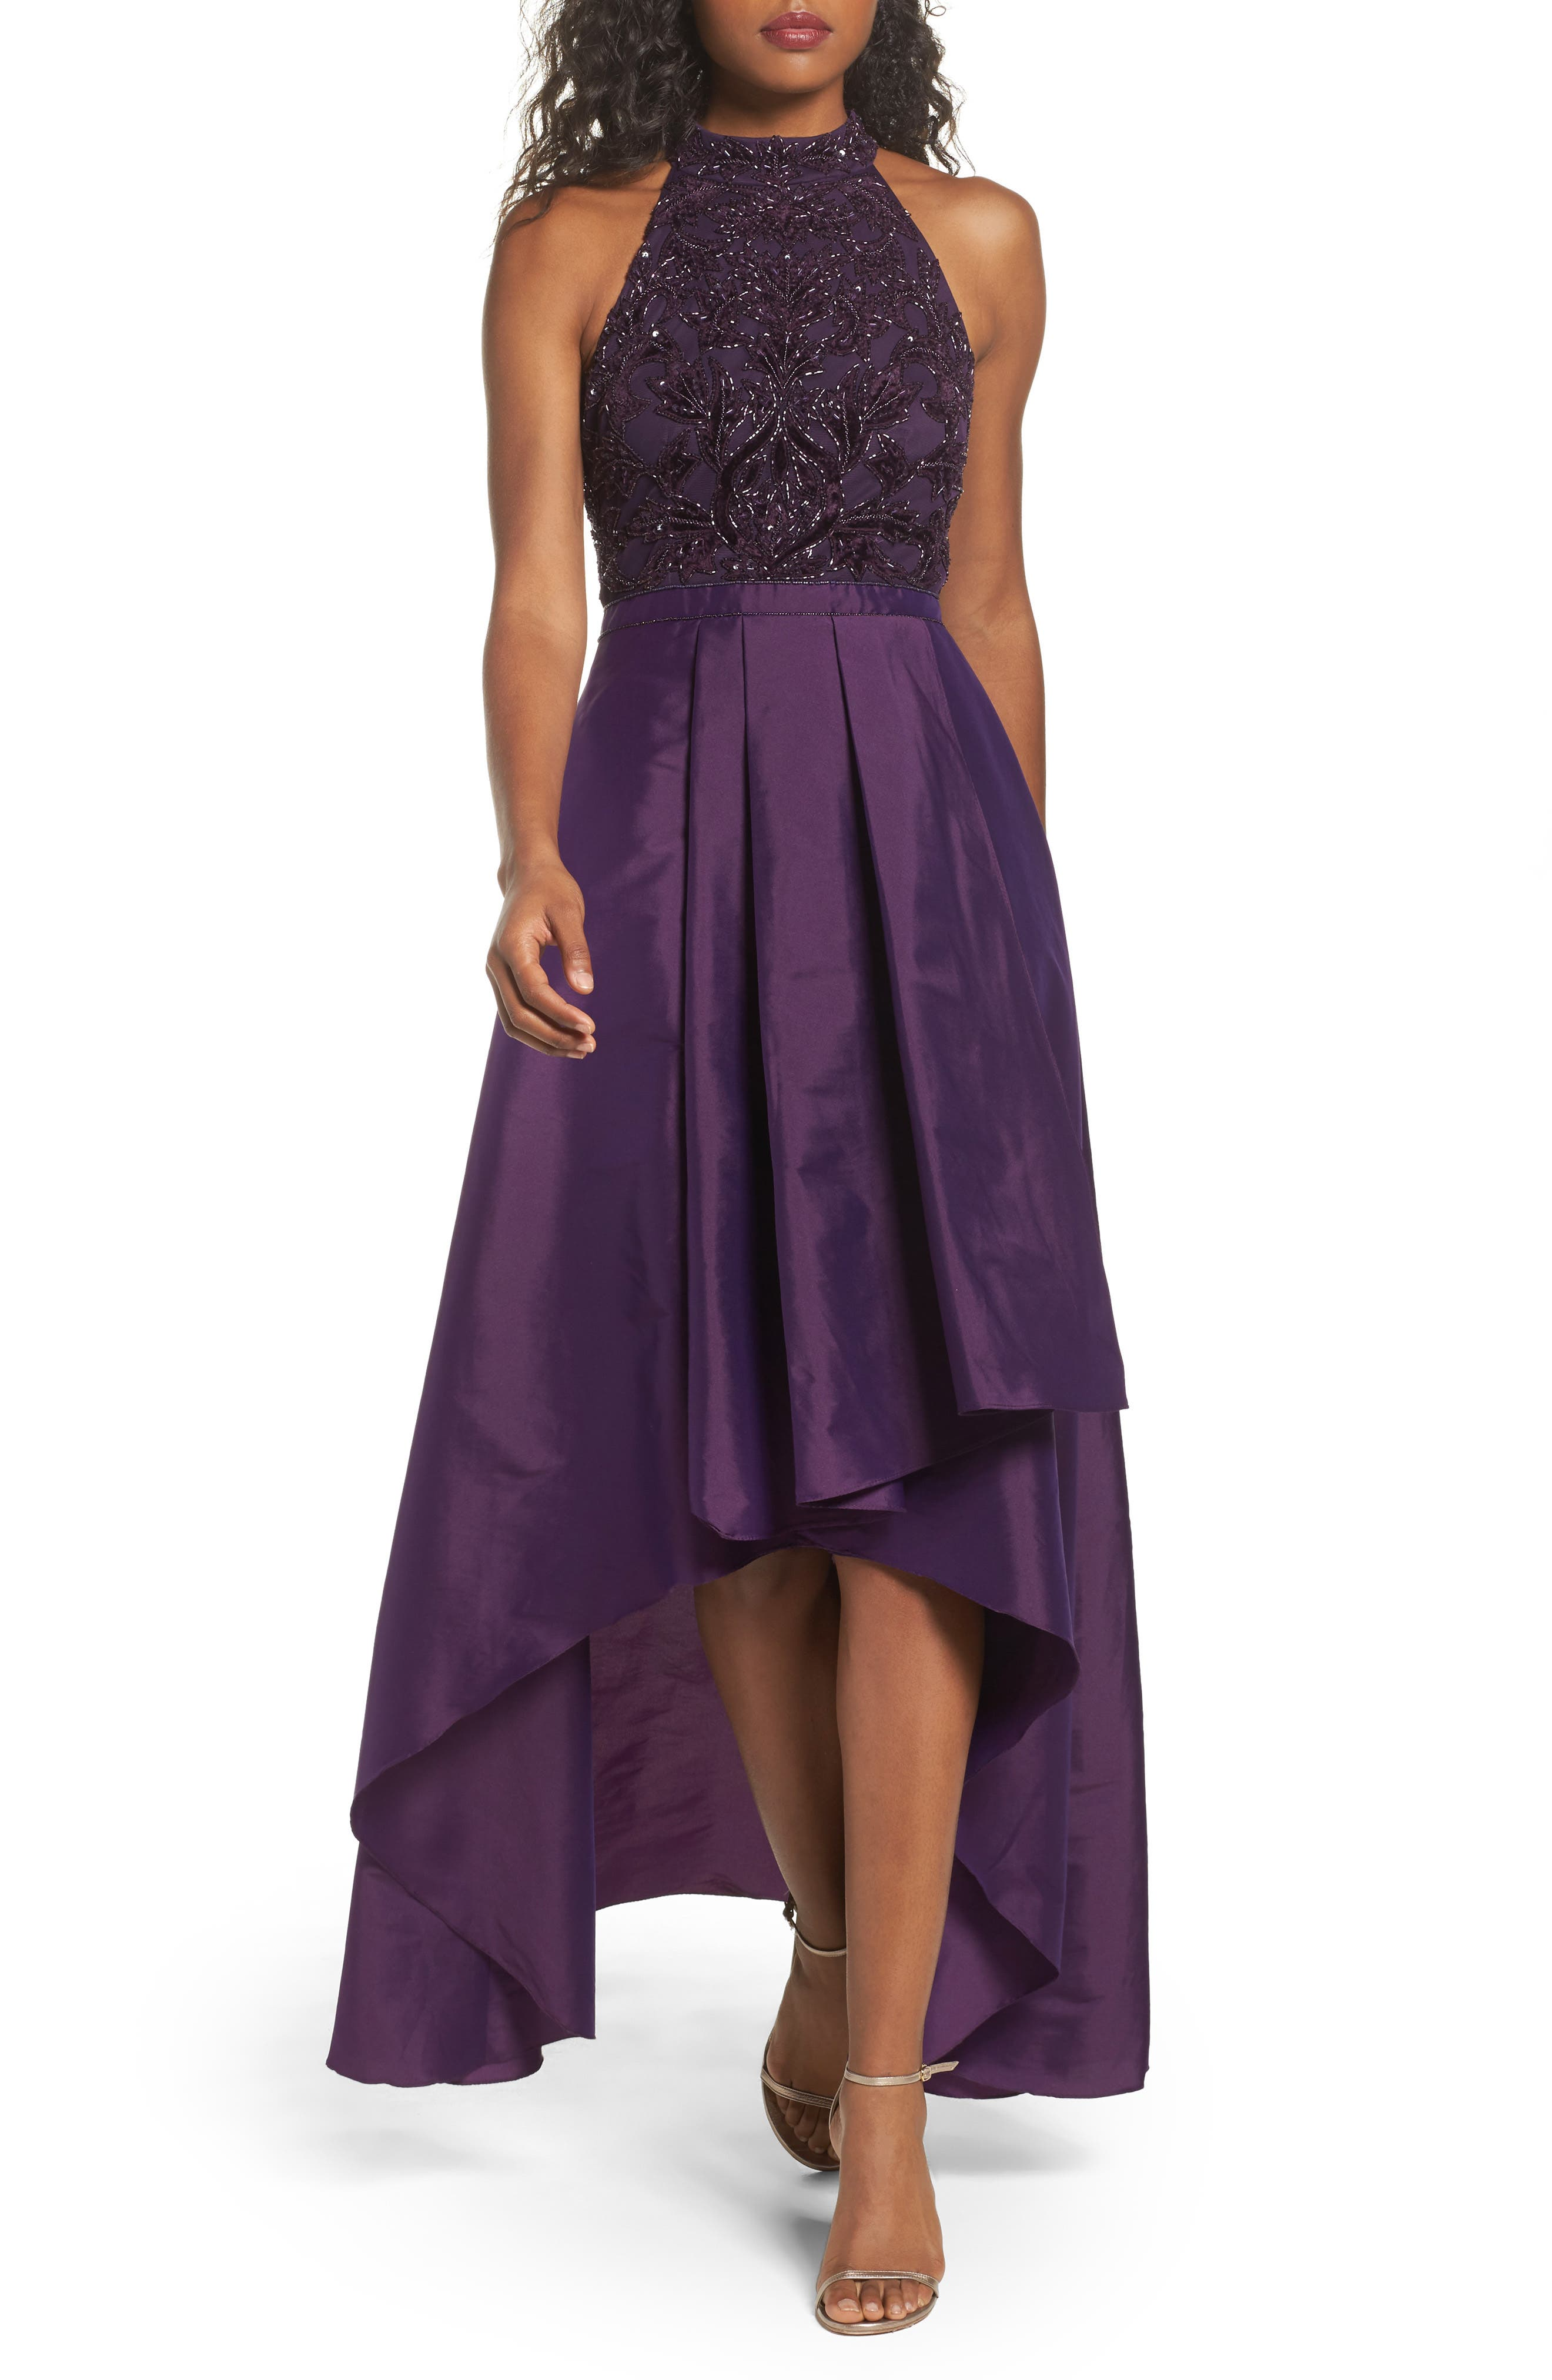 Alternate Image 1 Selected - Adrianna Papell Embellished Taffeta High/Low Gown